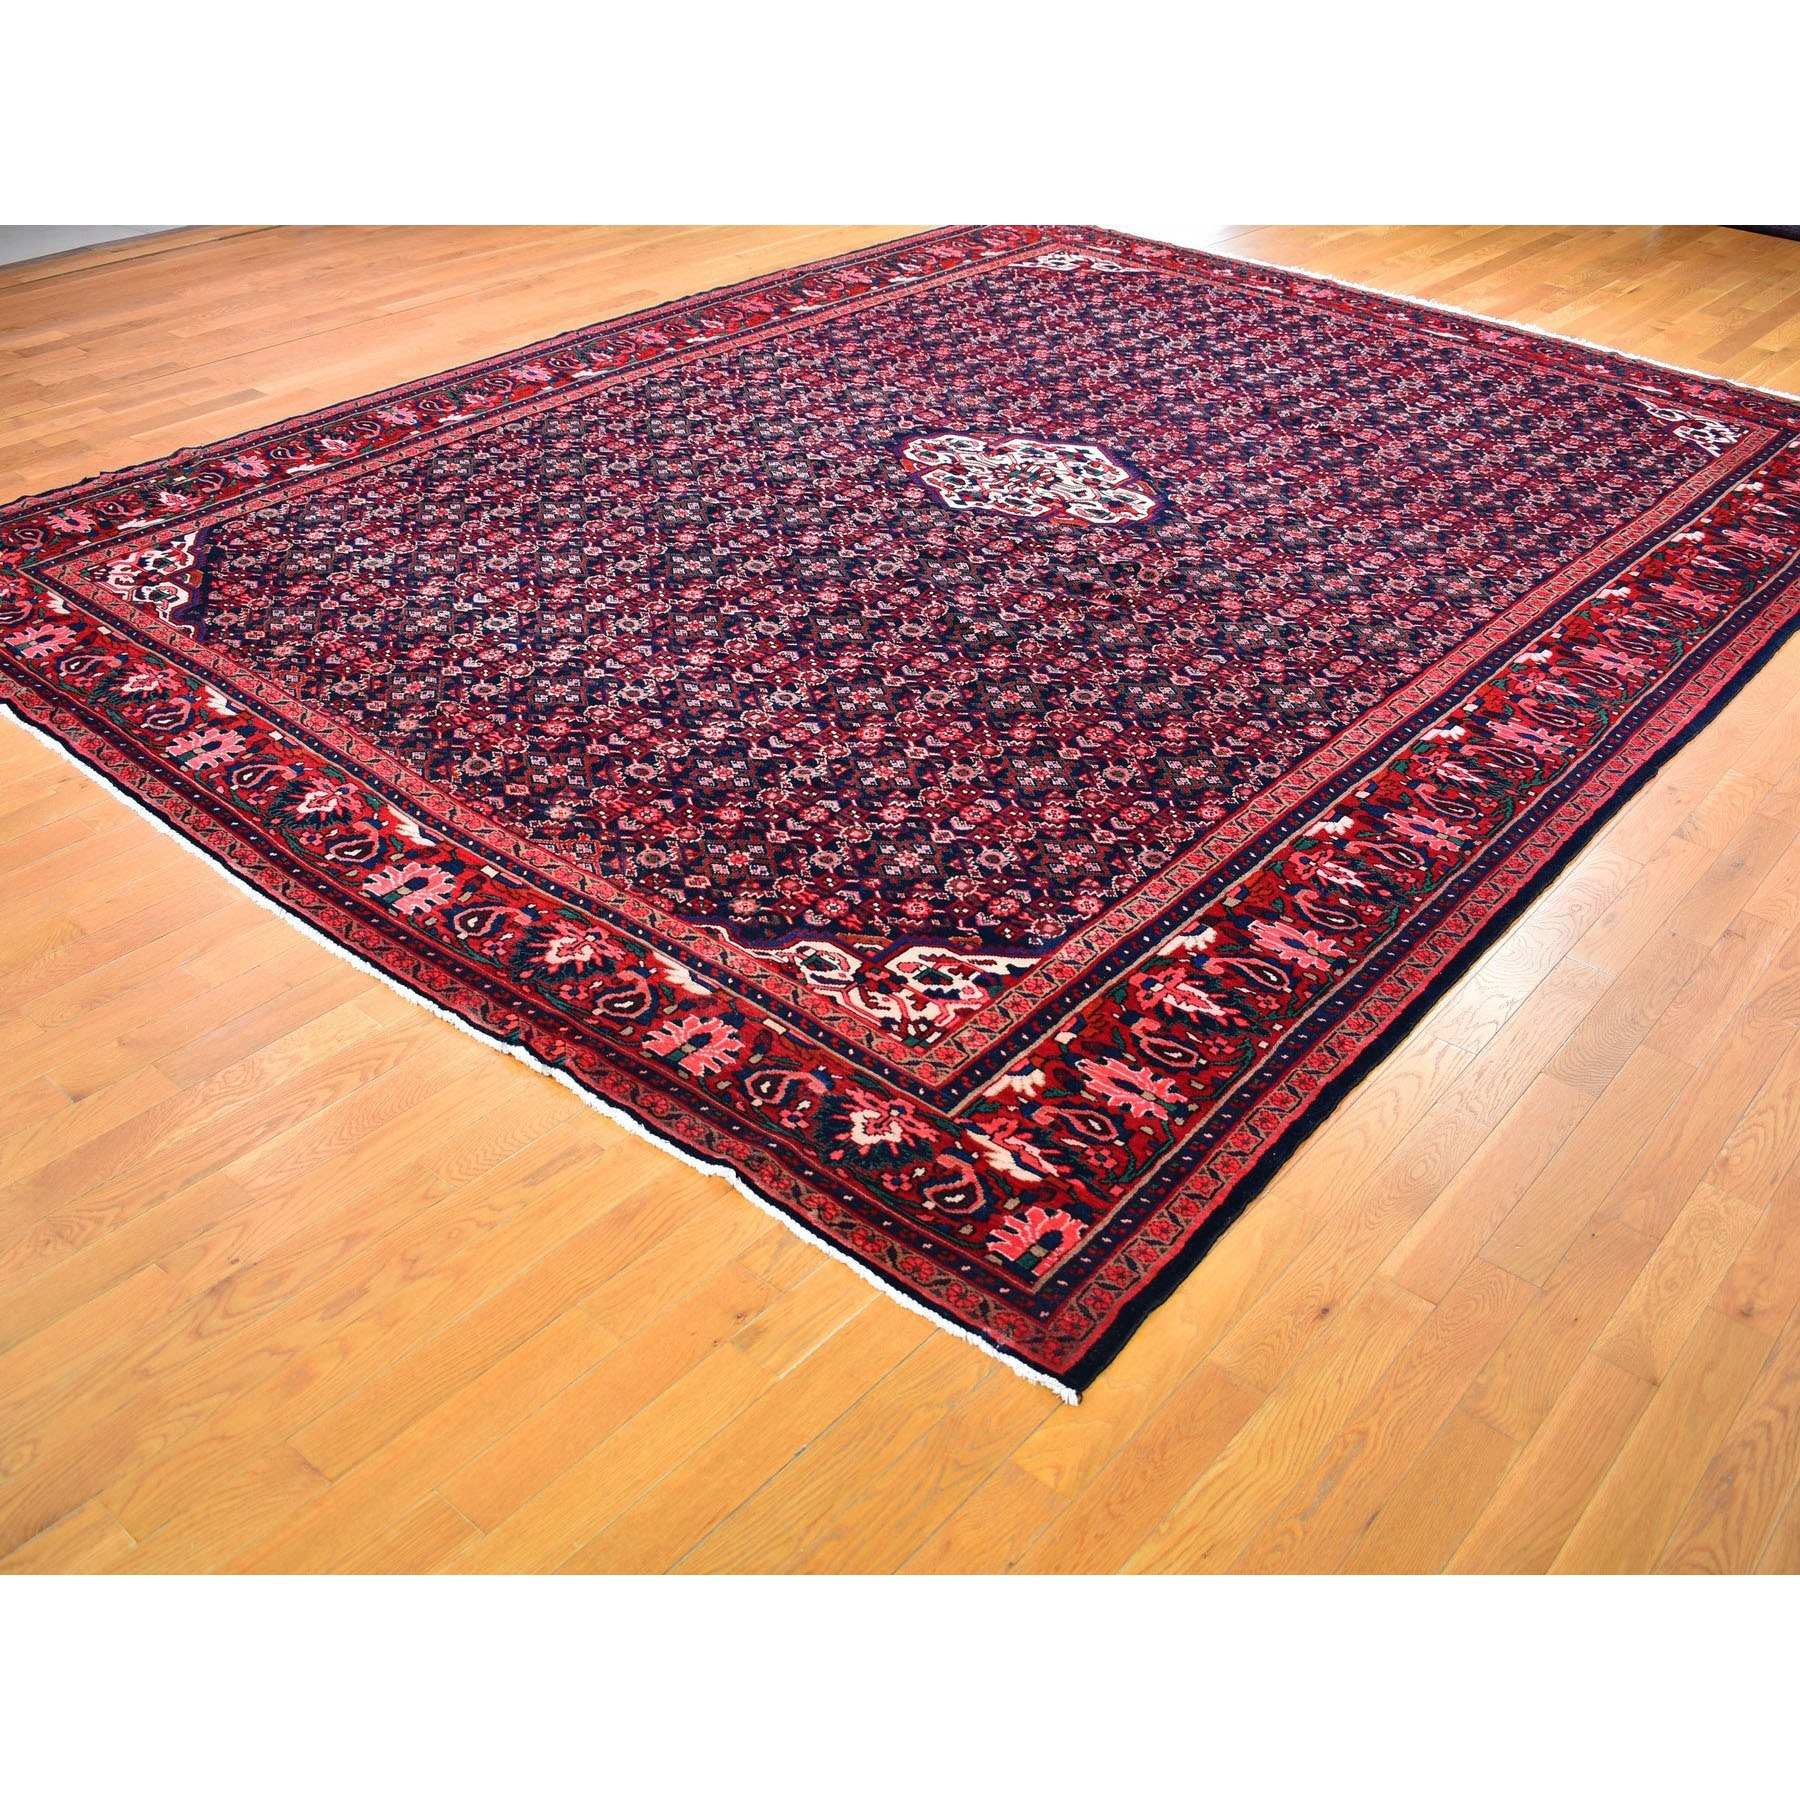 10-7 x14- Red New Persian Mahal Fish Design Denser Weave Pure Wool Hand Knotted Oriental Rug